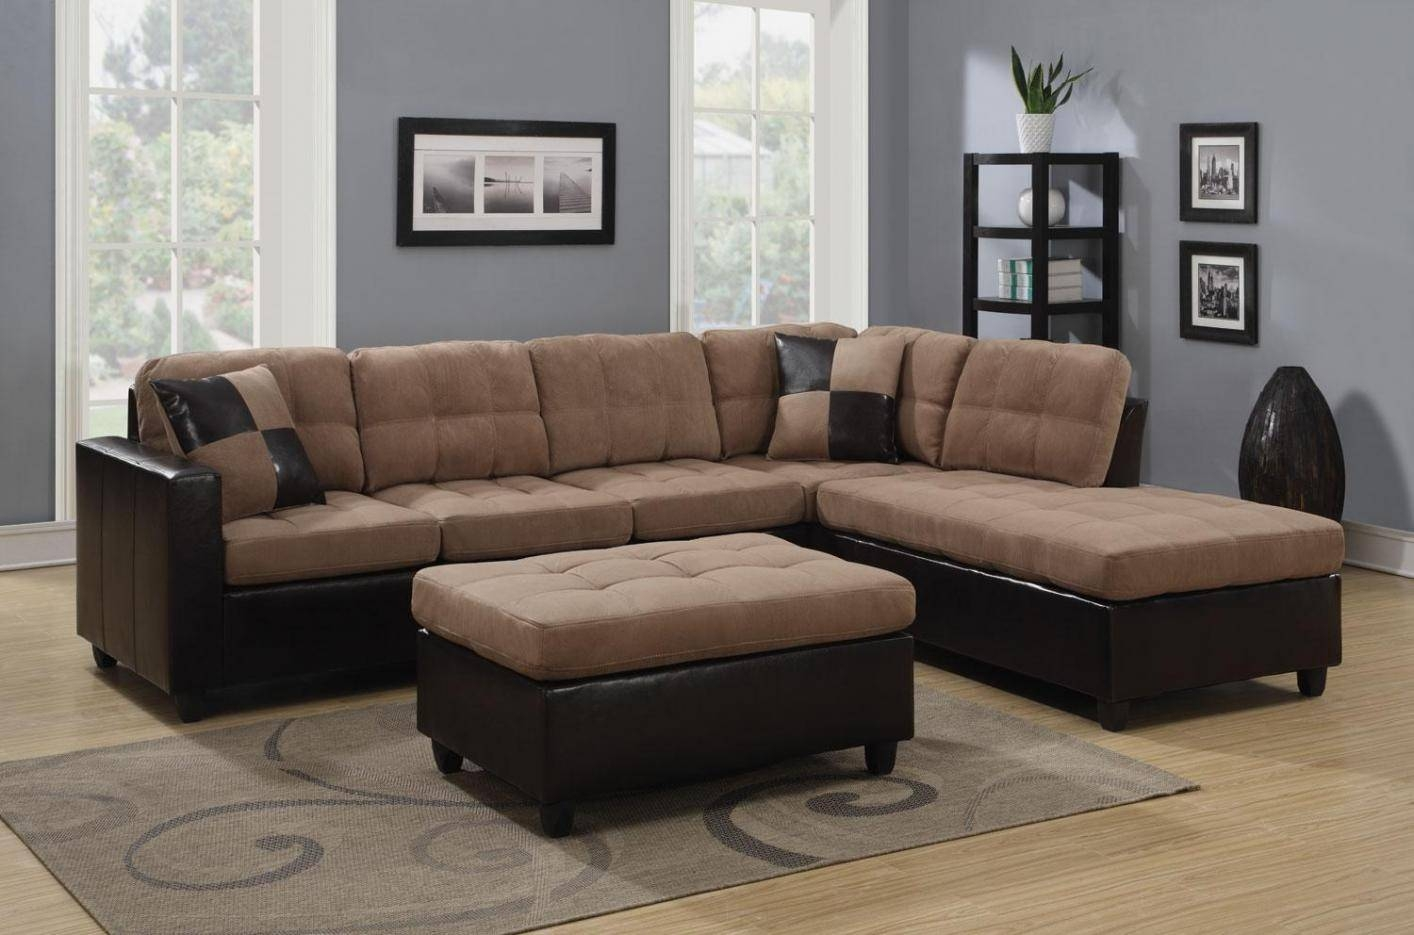 Mallory Beige Leather Sectional Sofa   Steal A Sofa Furniture Regarding Beige Sofas (Photo 13 of 15)